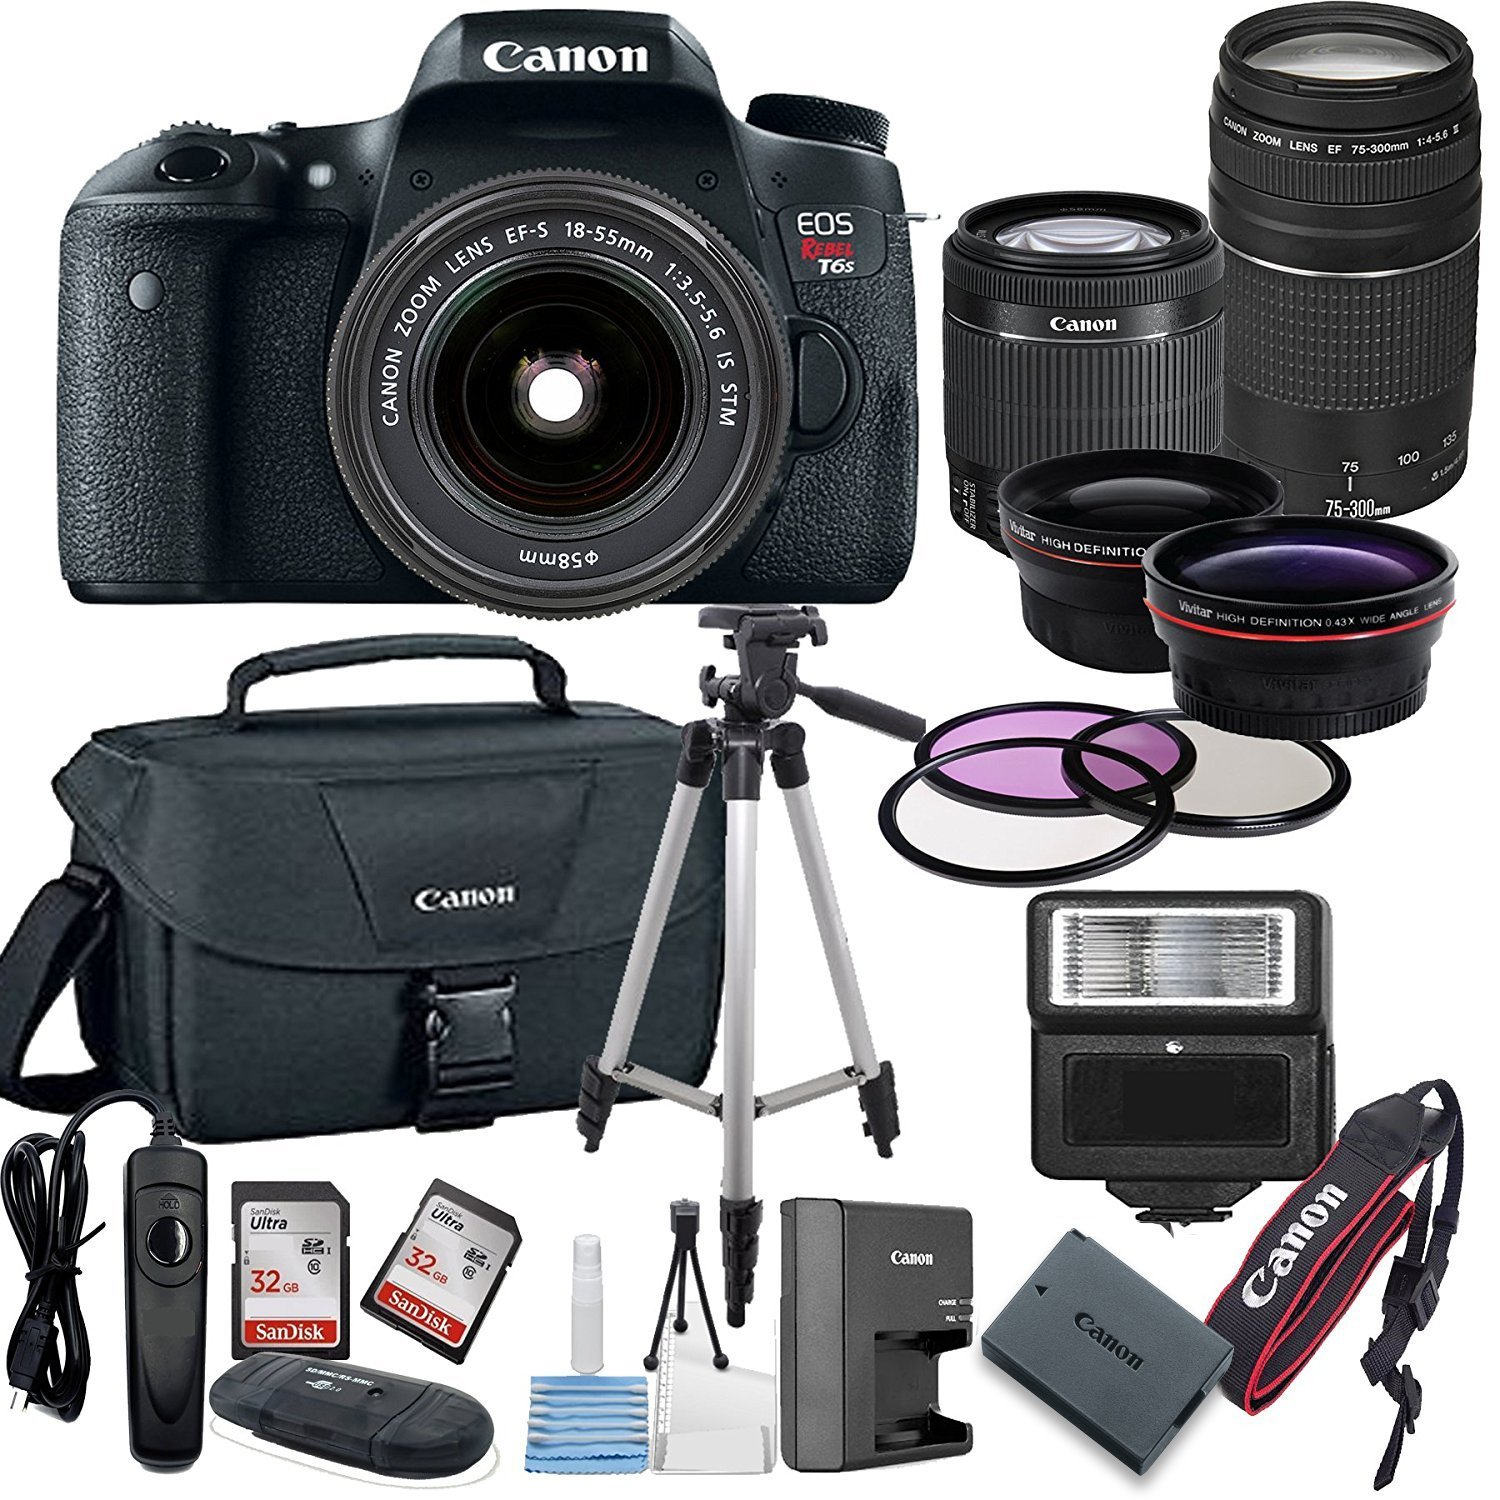 Canon EOS Rebel T6S Digital SLR Camera w/ EF-S 18-55mm + 75-300mm Telephoto Zoom Lens  Bundle includes Camera, Lenses, Filters, Bag, Memory Cards, Tripod, Flash, Remote Shutter , Cleaning Kit, Replace